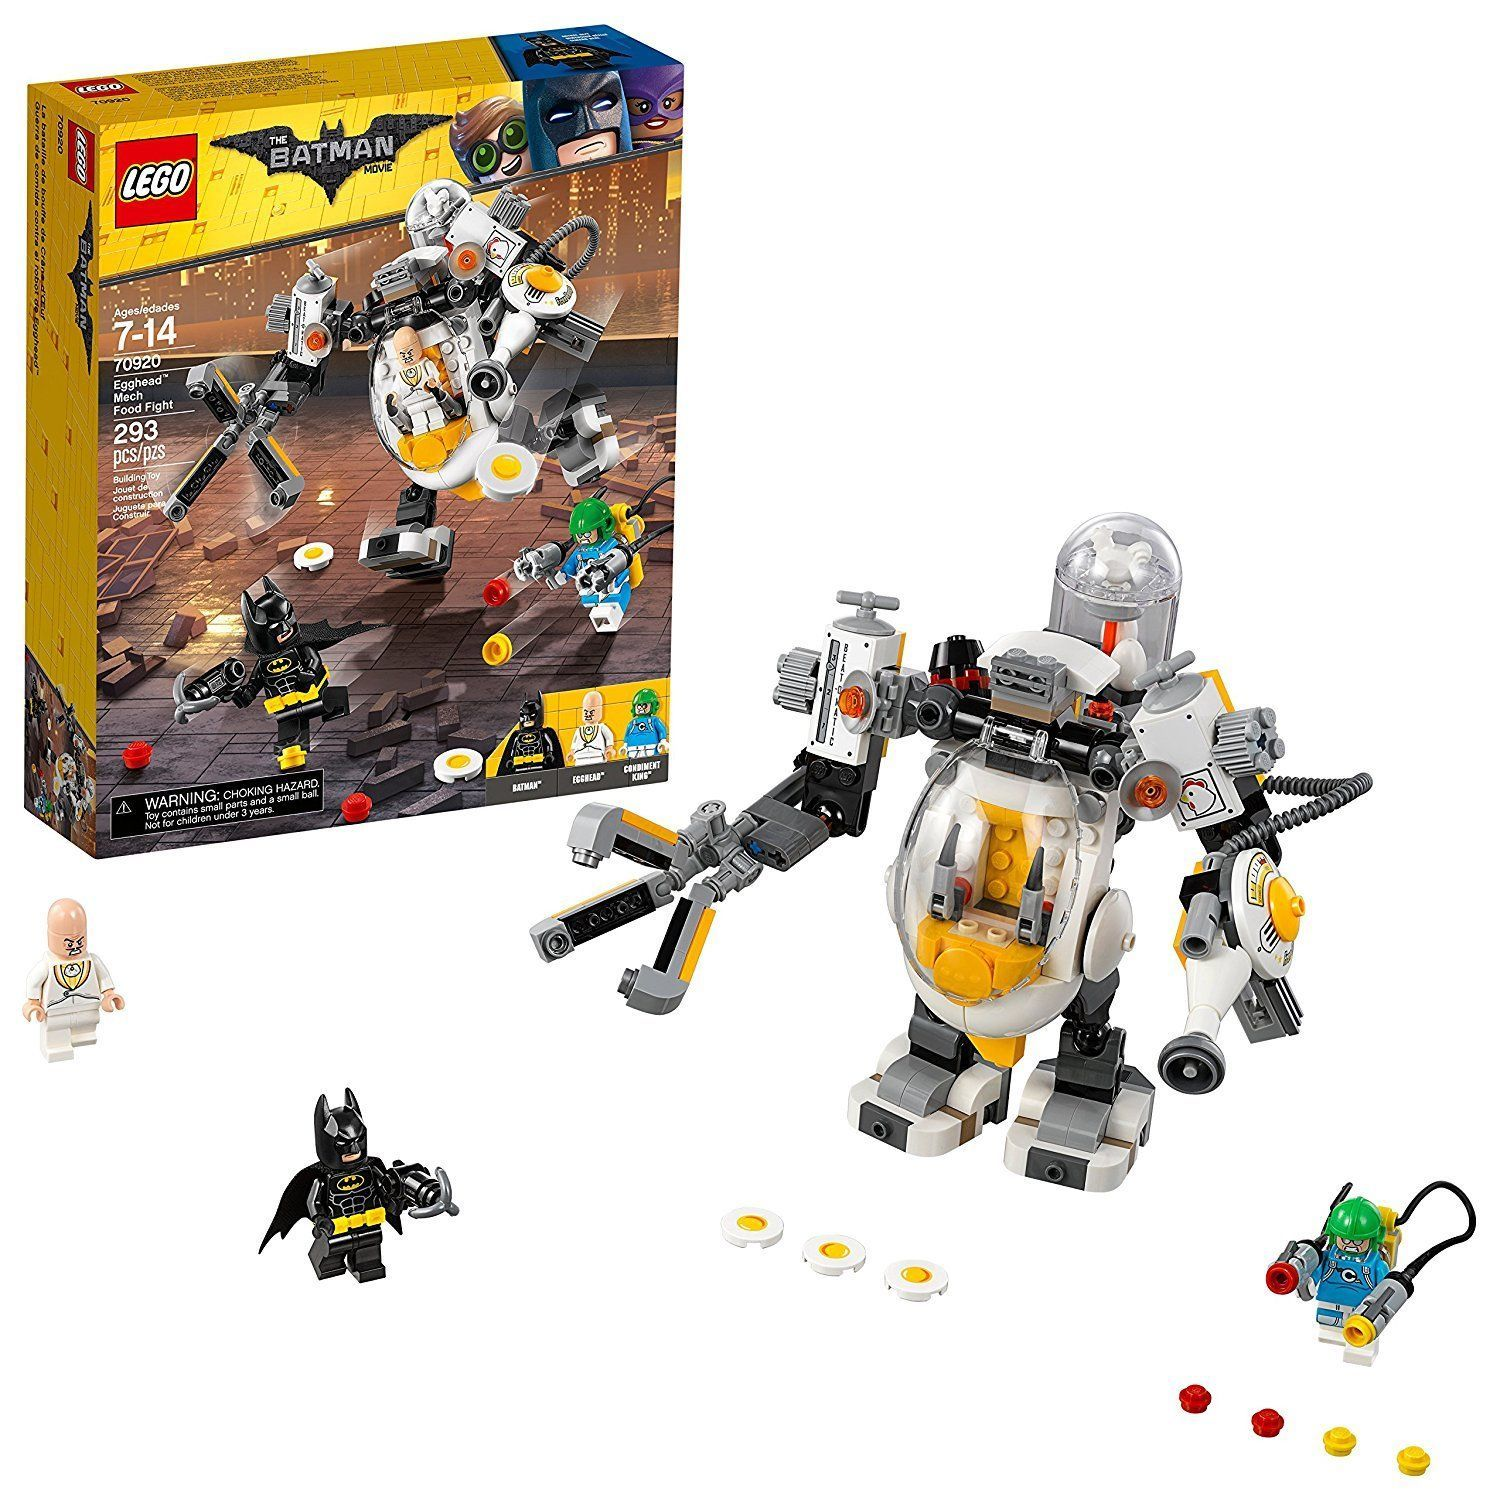 The LEGO Batman Movie 2018 Egghead Mech Food Fight (70920) [New] Building Set